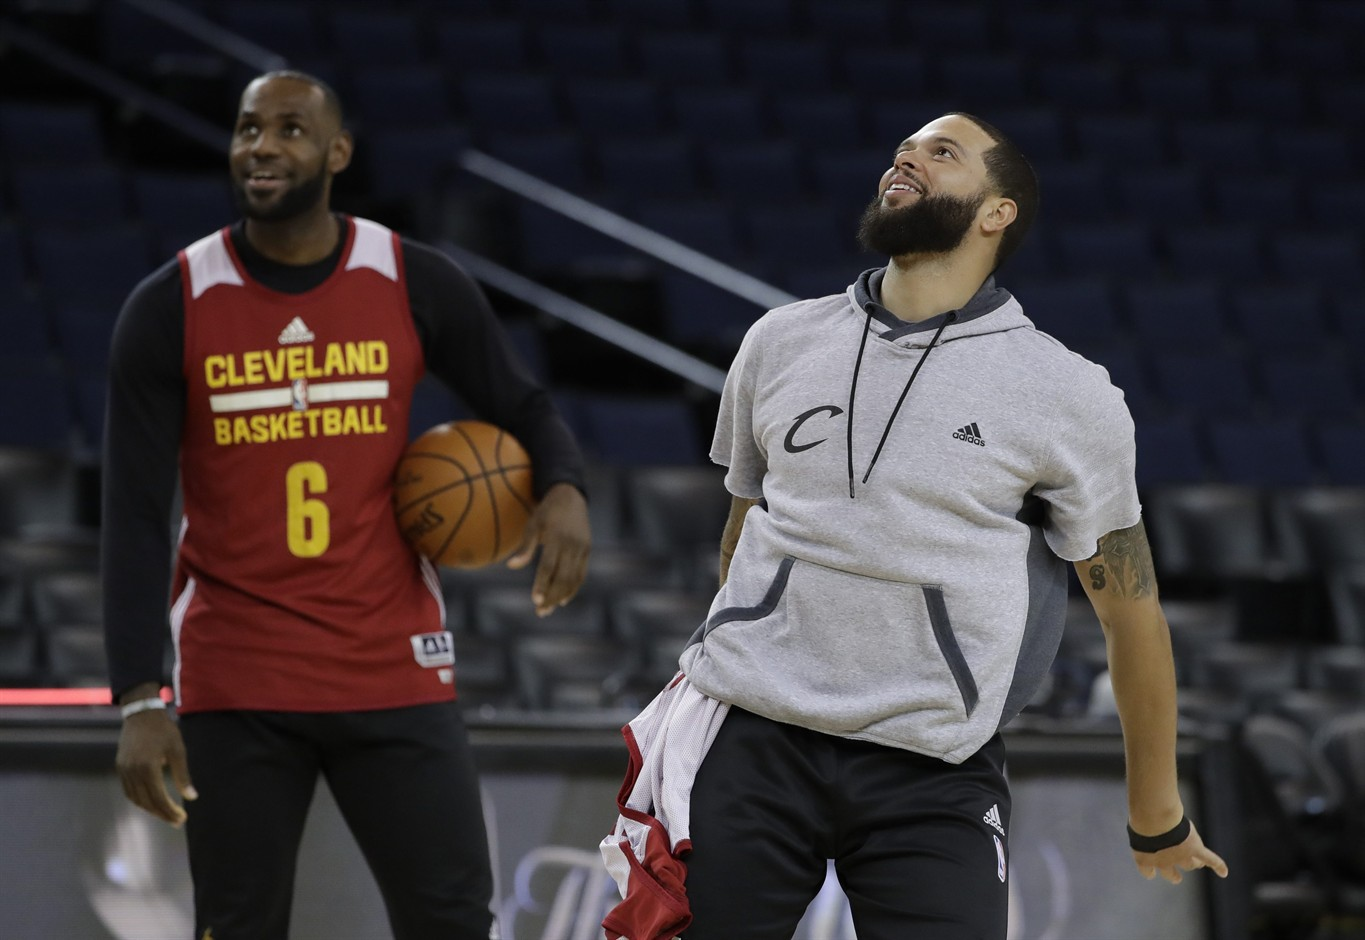 Cleveland, Golden State meet for third straight time in NBA Finals